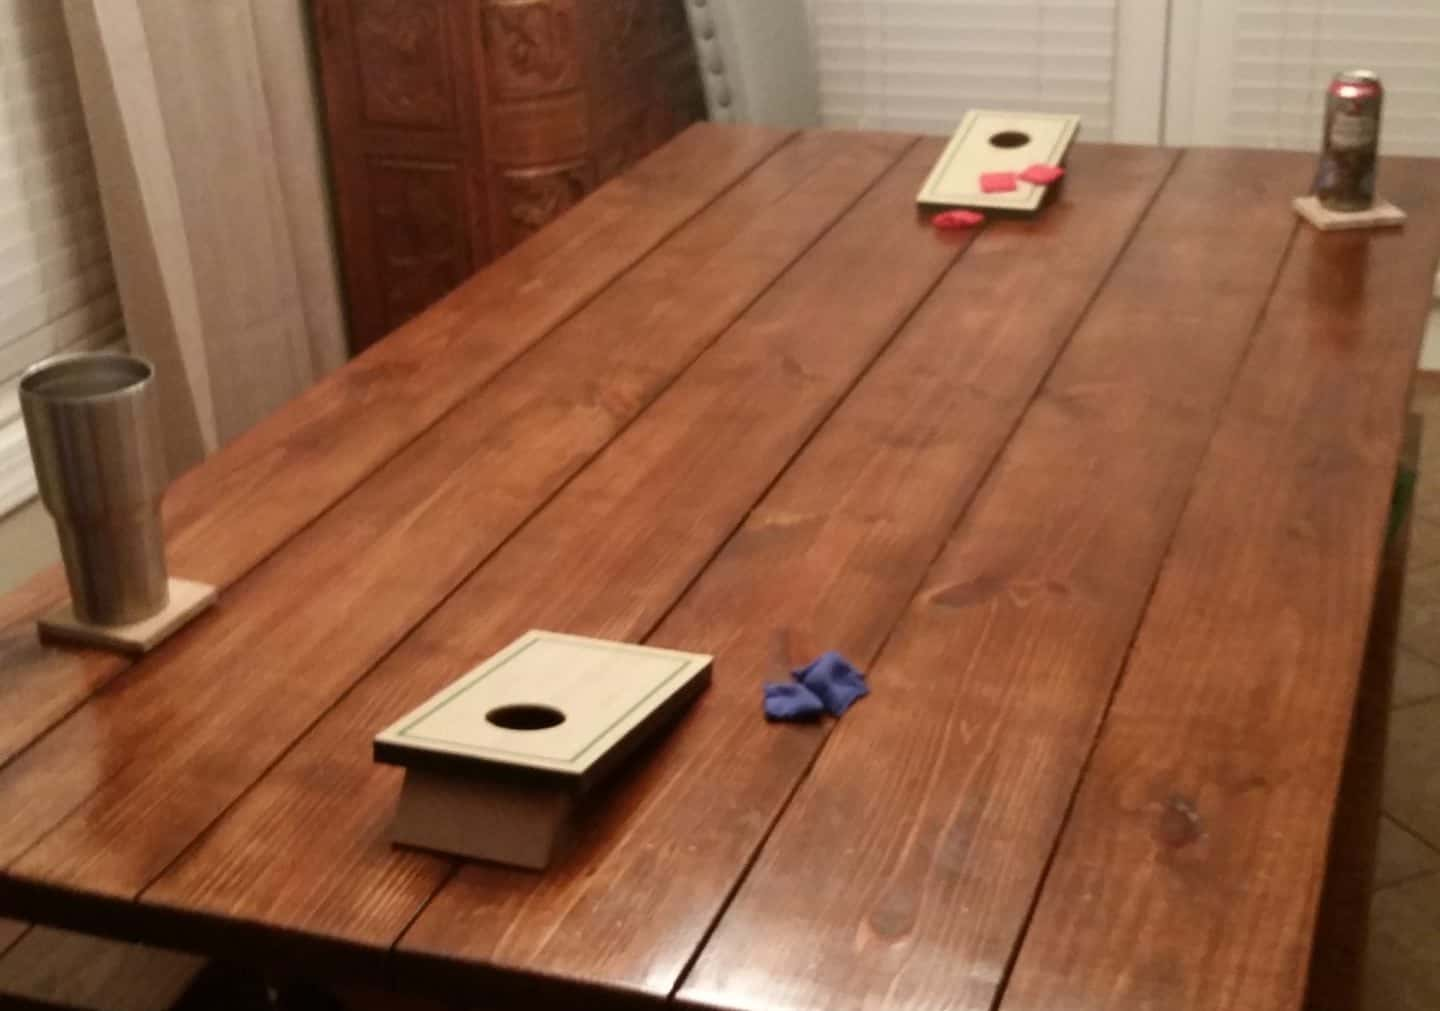 Tabletop Cornhole: How To Have Mini Cornhole Fun For Everyone